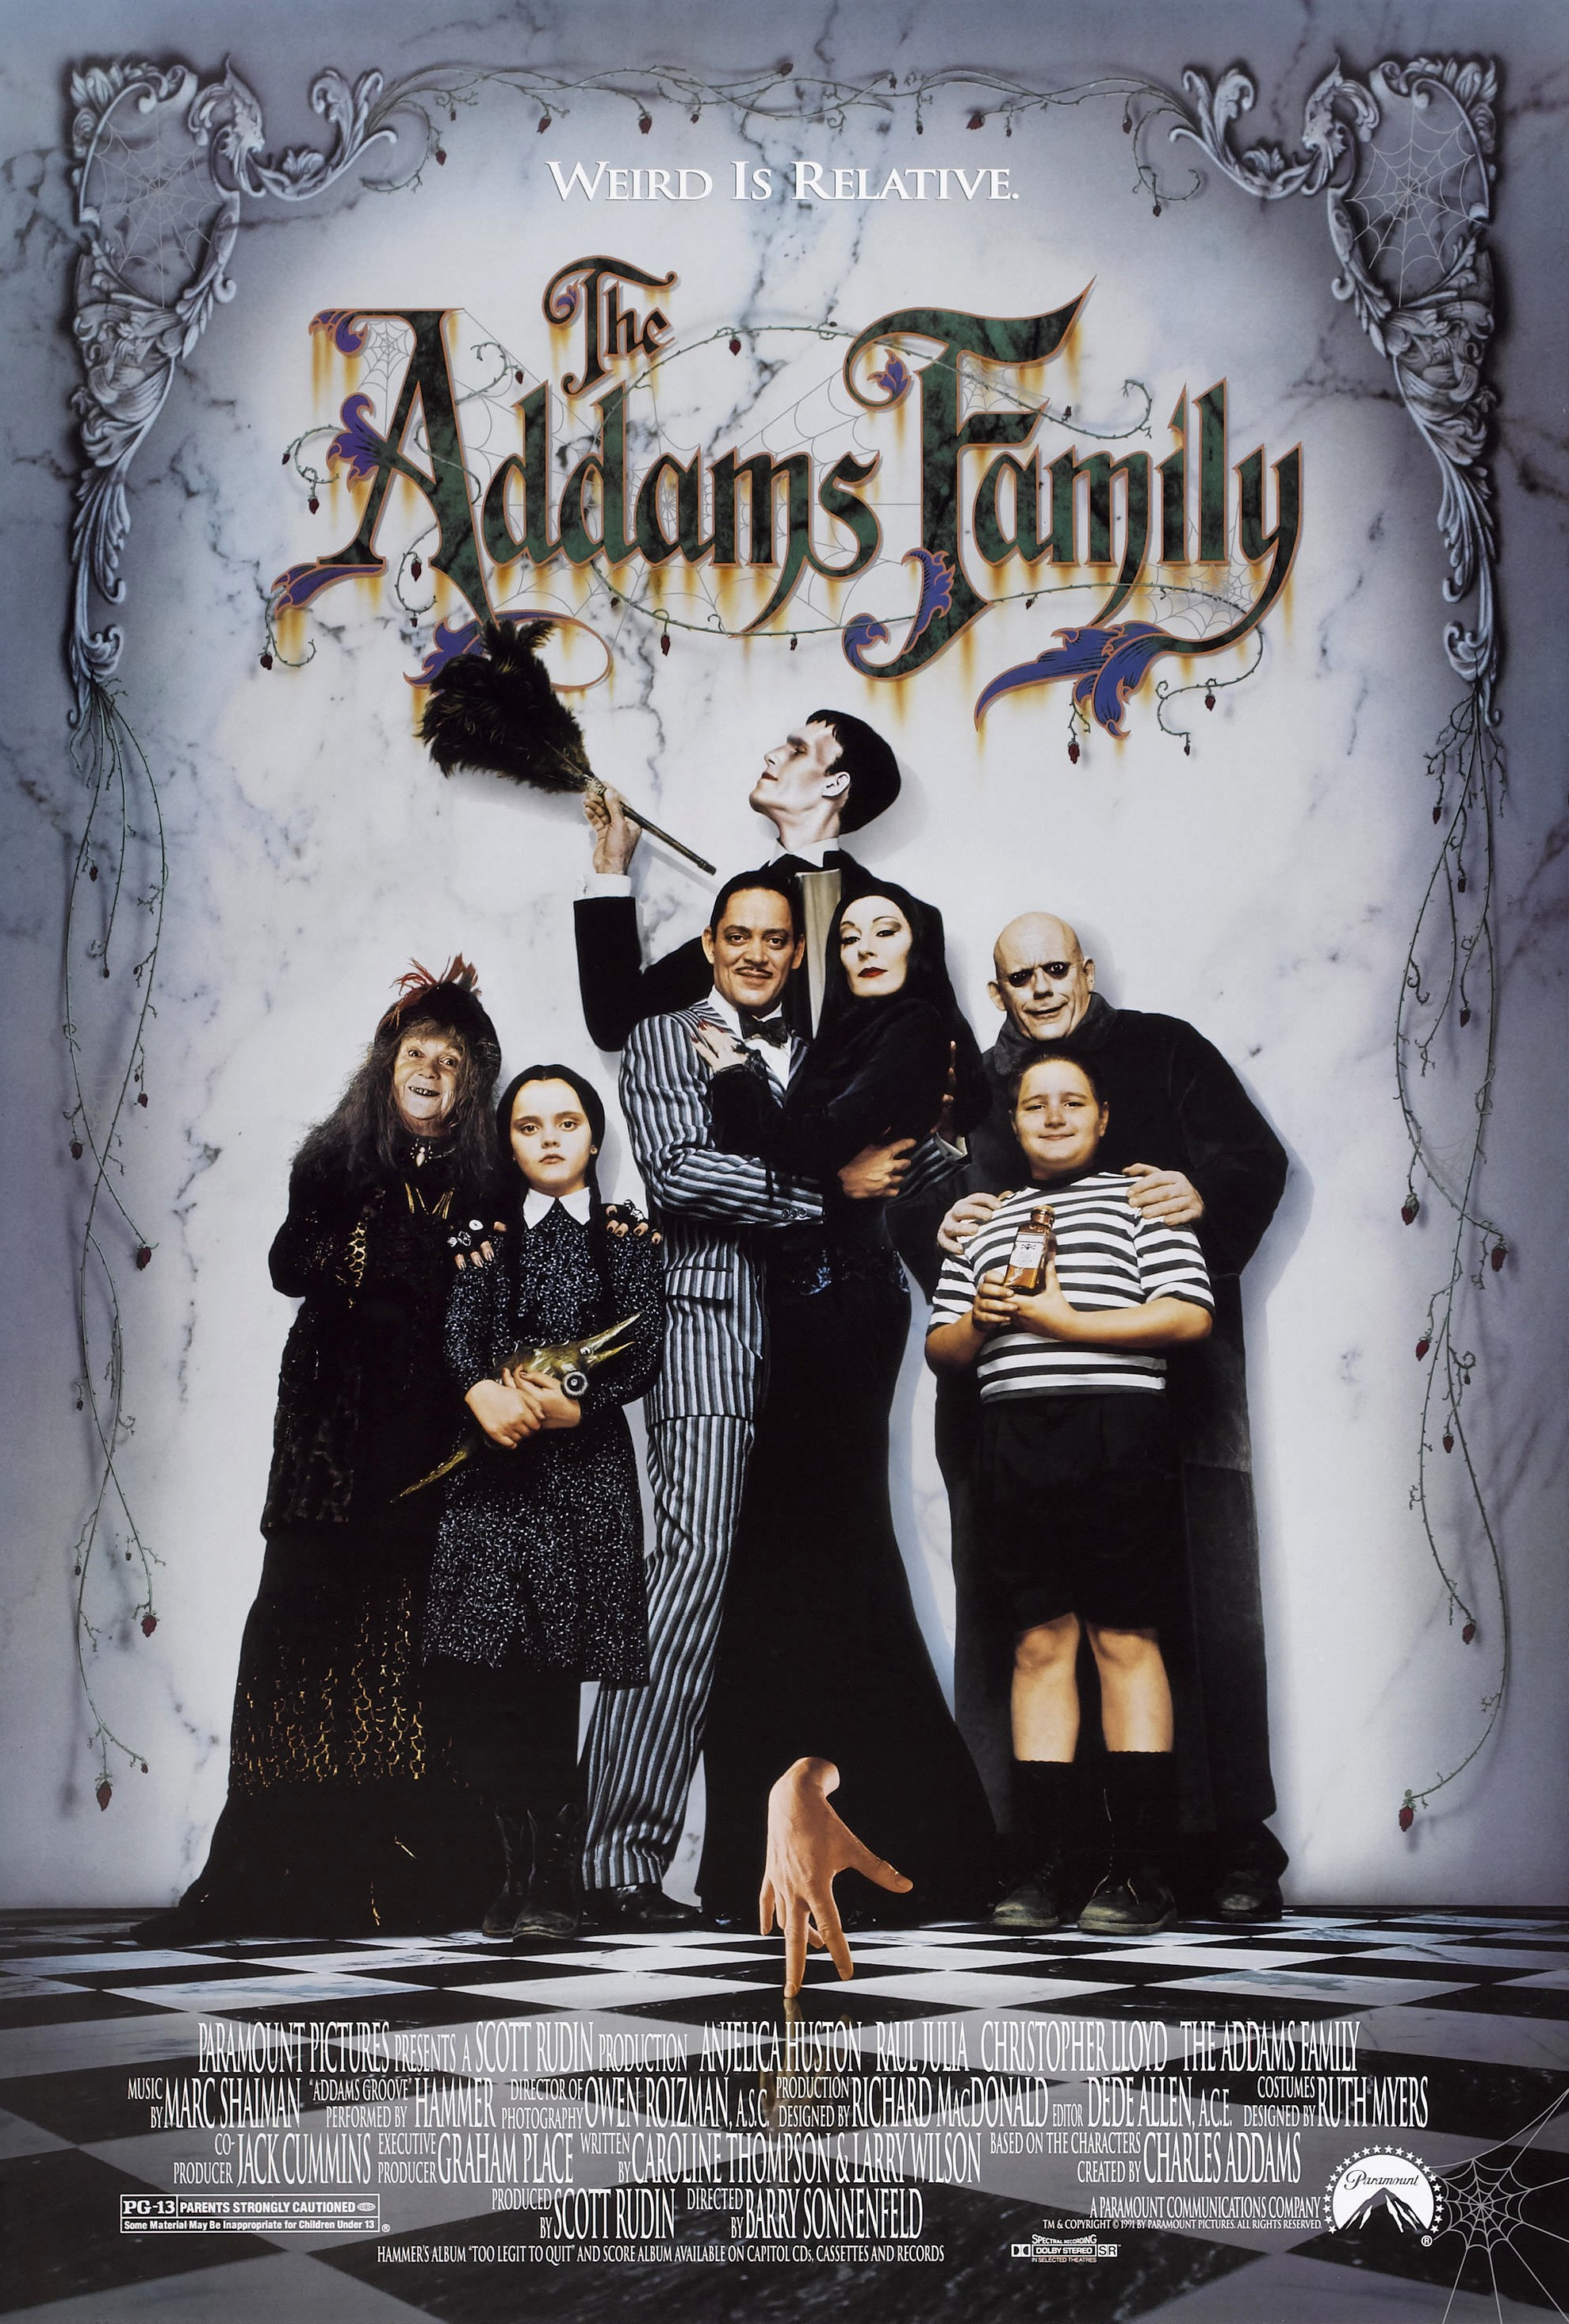 Christina Ricci, Raul Julia, Christopher Lloyd, Anjelica Huston, Christopher Hart, Judith Malina, Carel Struycken, and Jimmy Workman in The Addams Family (1991)